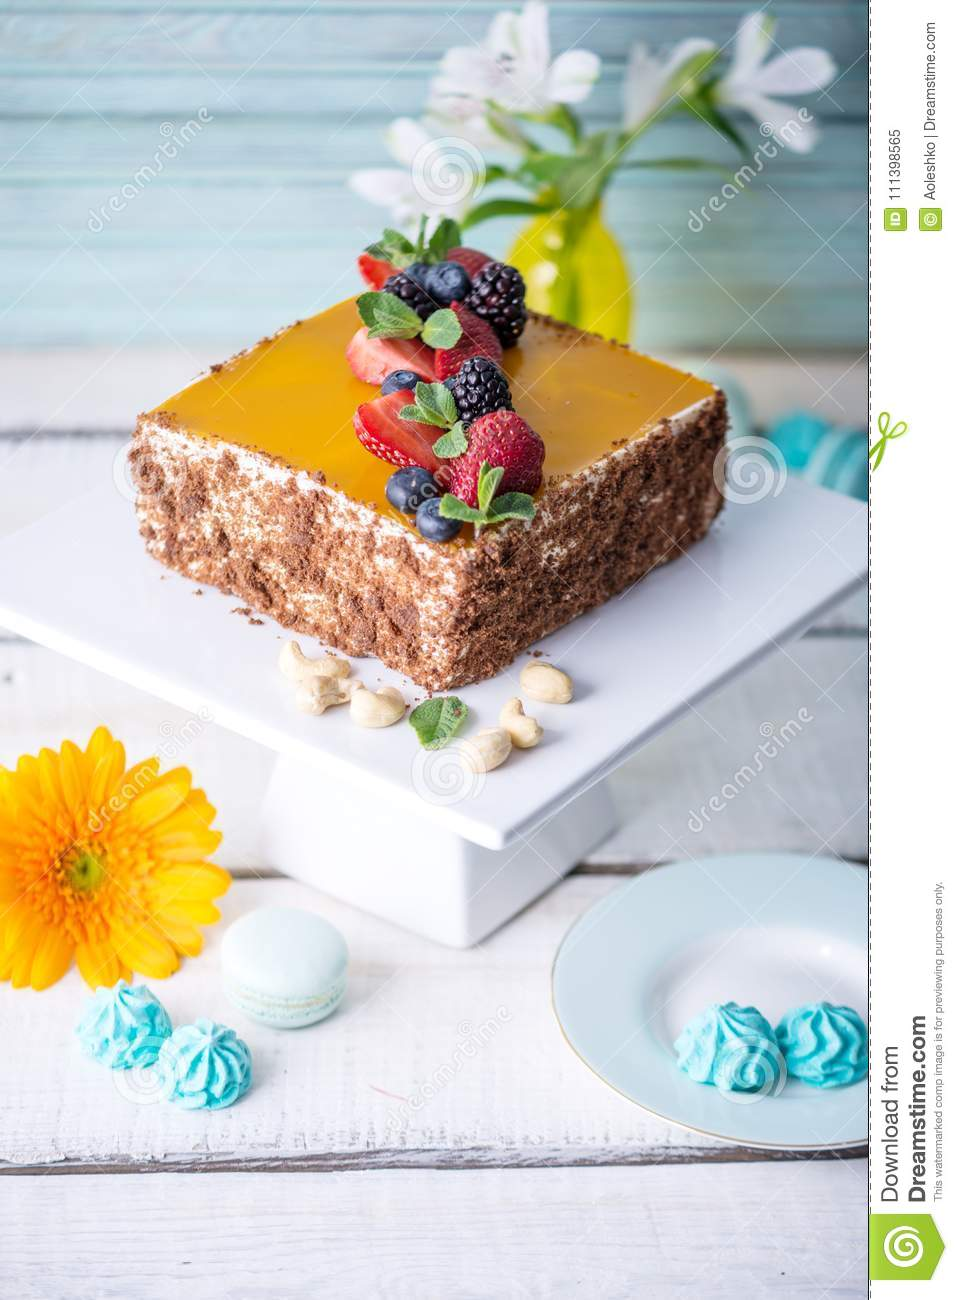 Homemade square cake decorated on top of yellow jelly and berries with mint on light background.